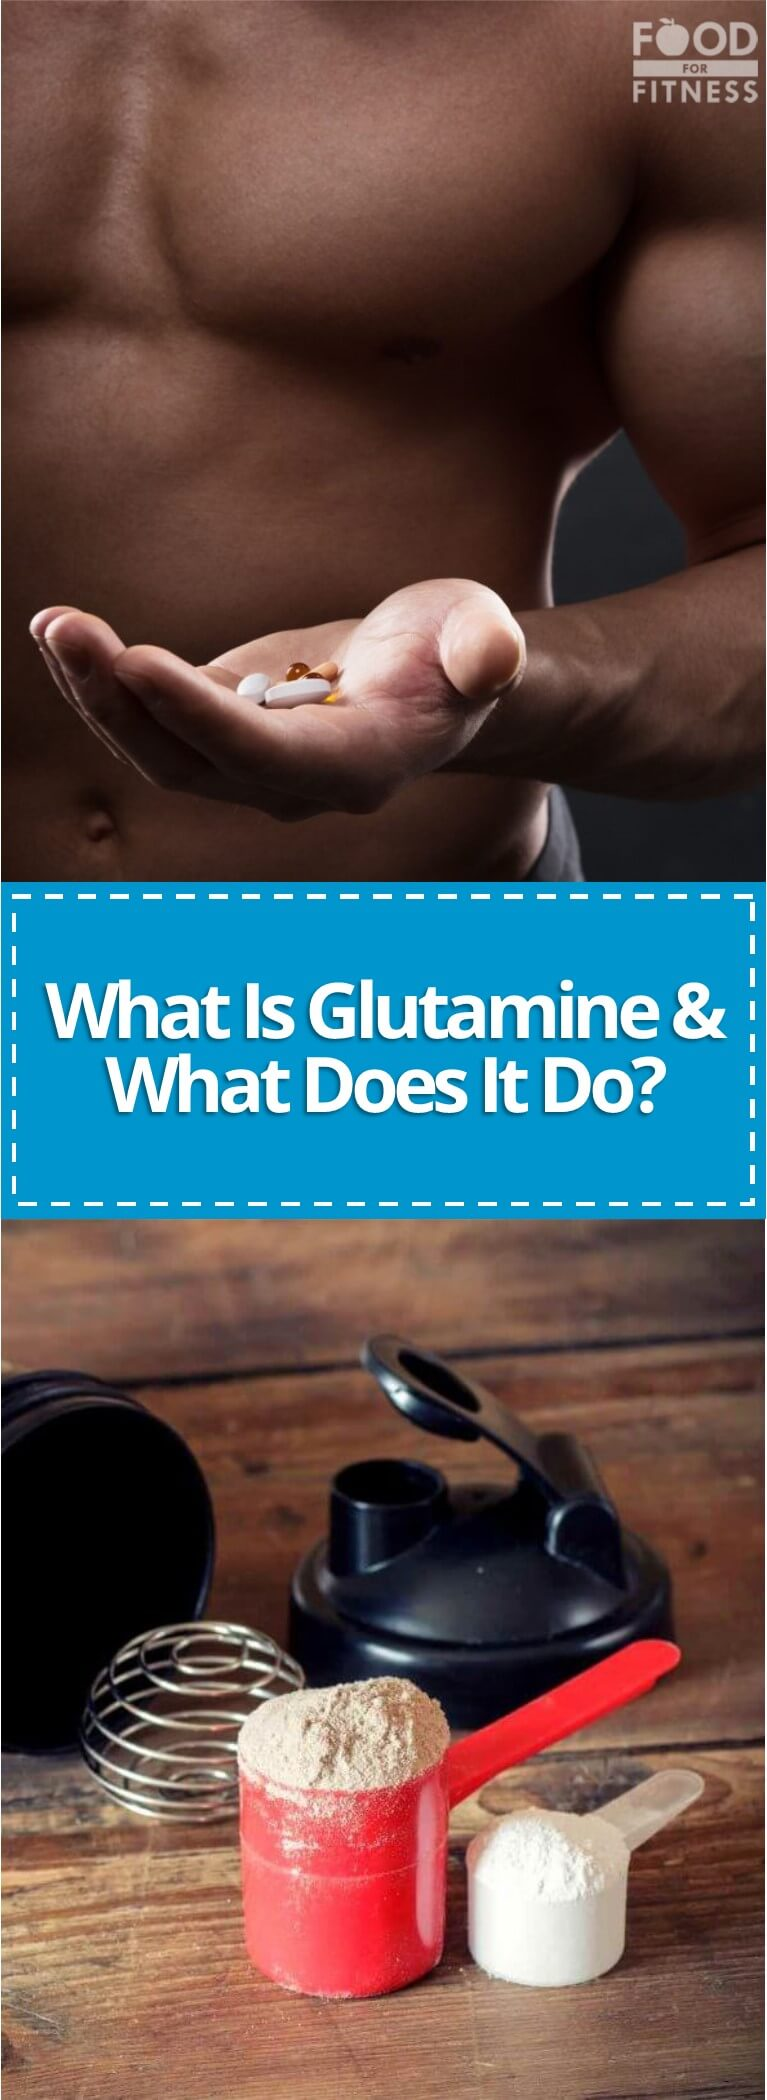 What Is Glutamine & What Does It Do?